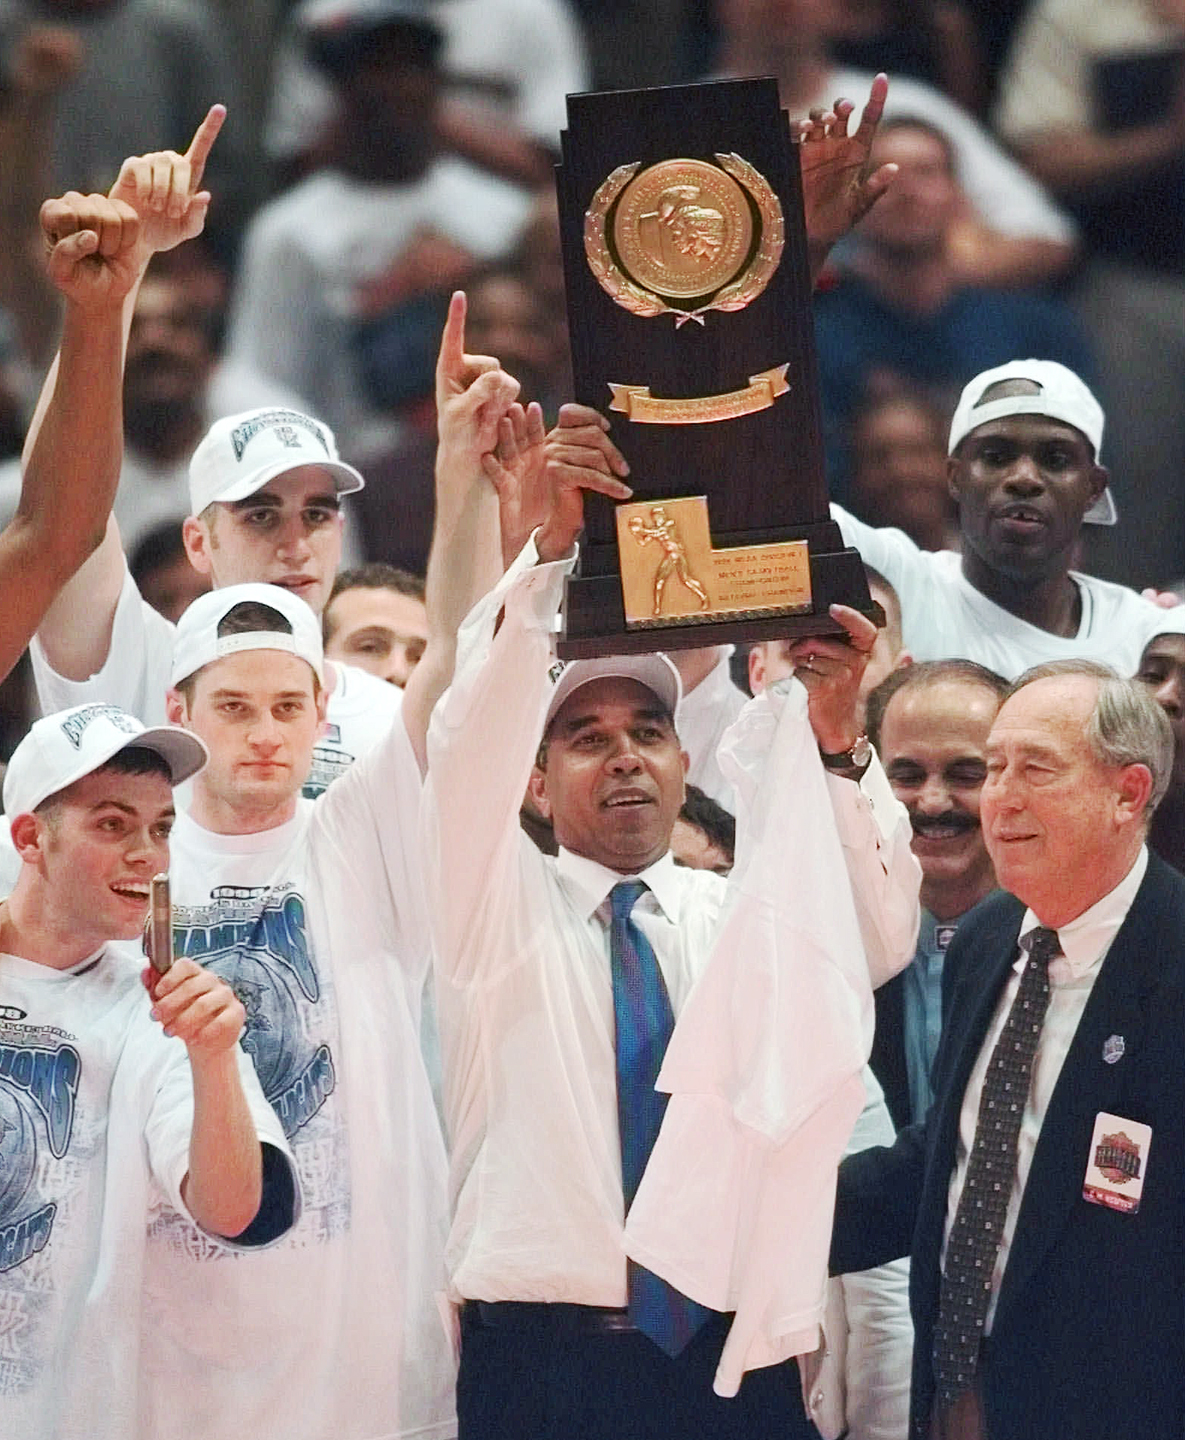 Kentucky coach Tubby Smith holds up the NCAA Div. I Championship trophy after the Wildcats 78-69 beat Utah in the NCAA Men's Final Four Championship game, Monday, March 30, 1998, at the Alamodome in San Antonio. At right is C.M. Newton, Kentucky atheletic director.